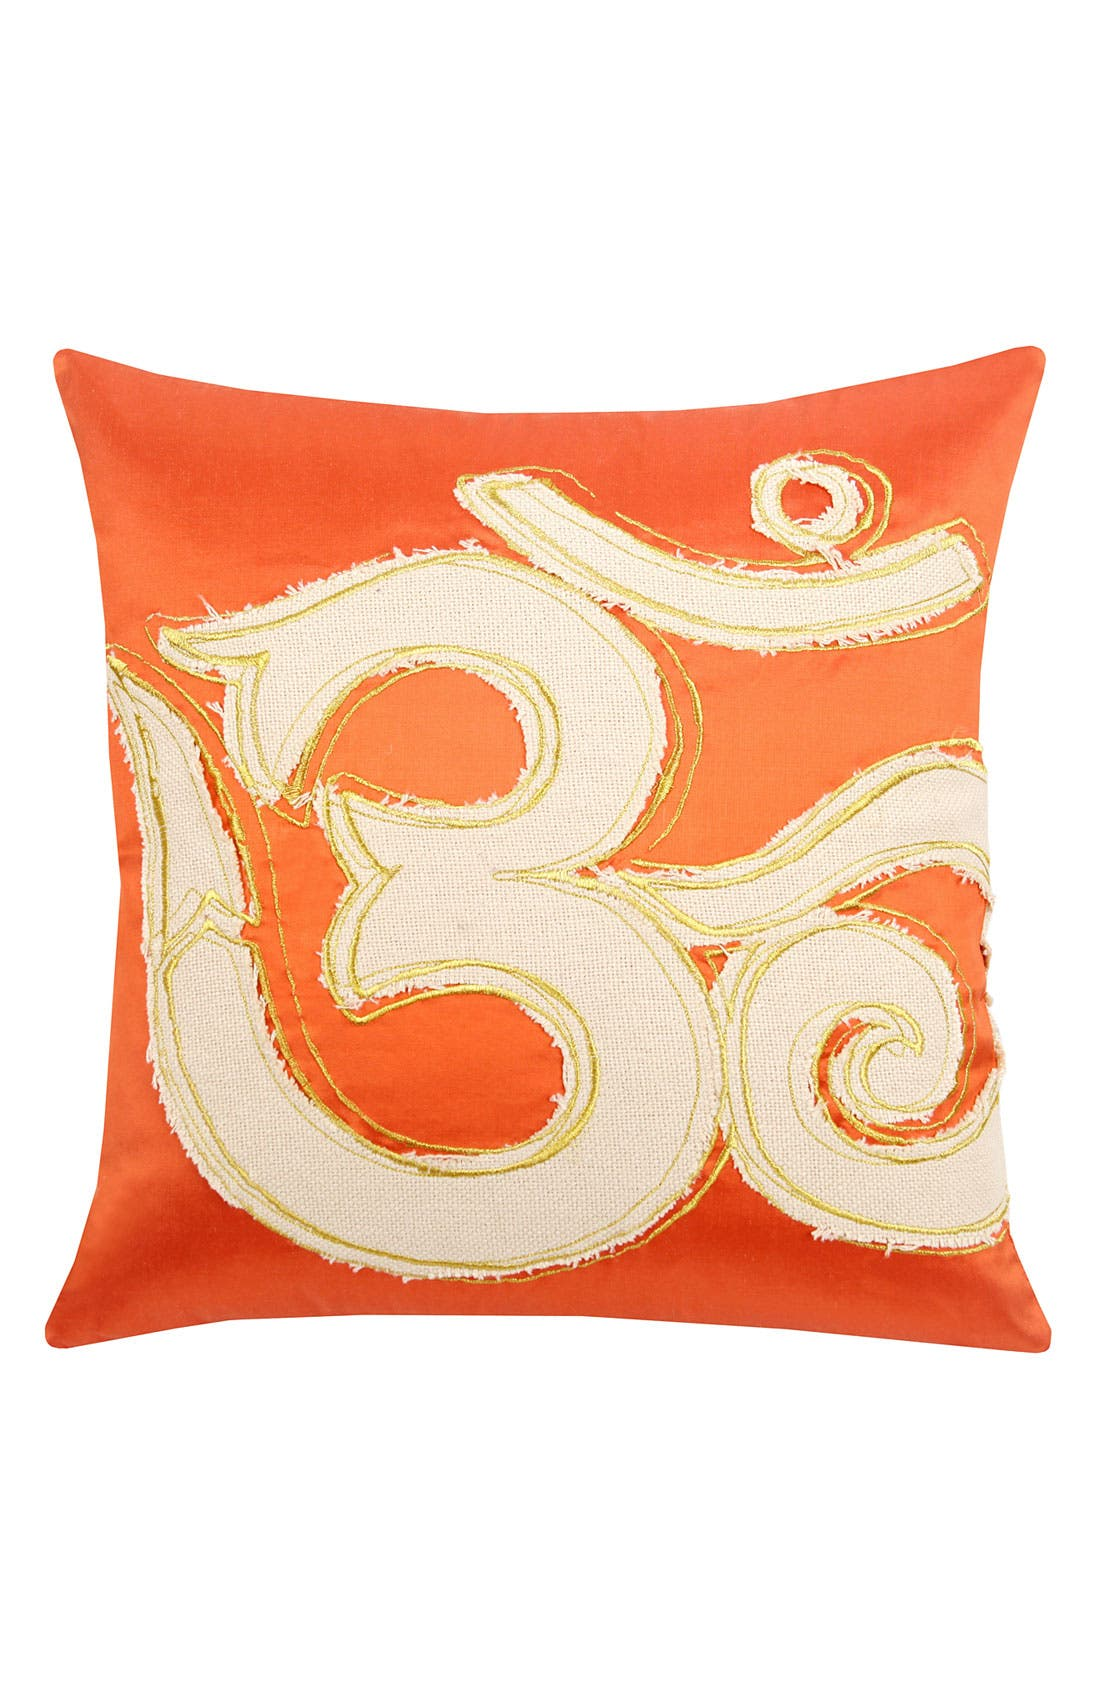 'Om' Coral Pillow,                             Main thumbnail 1, color,